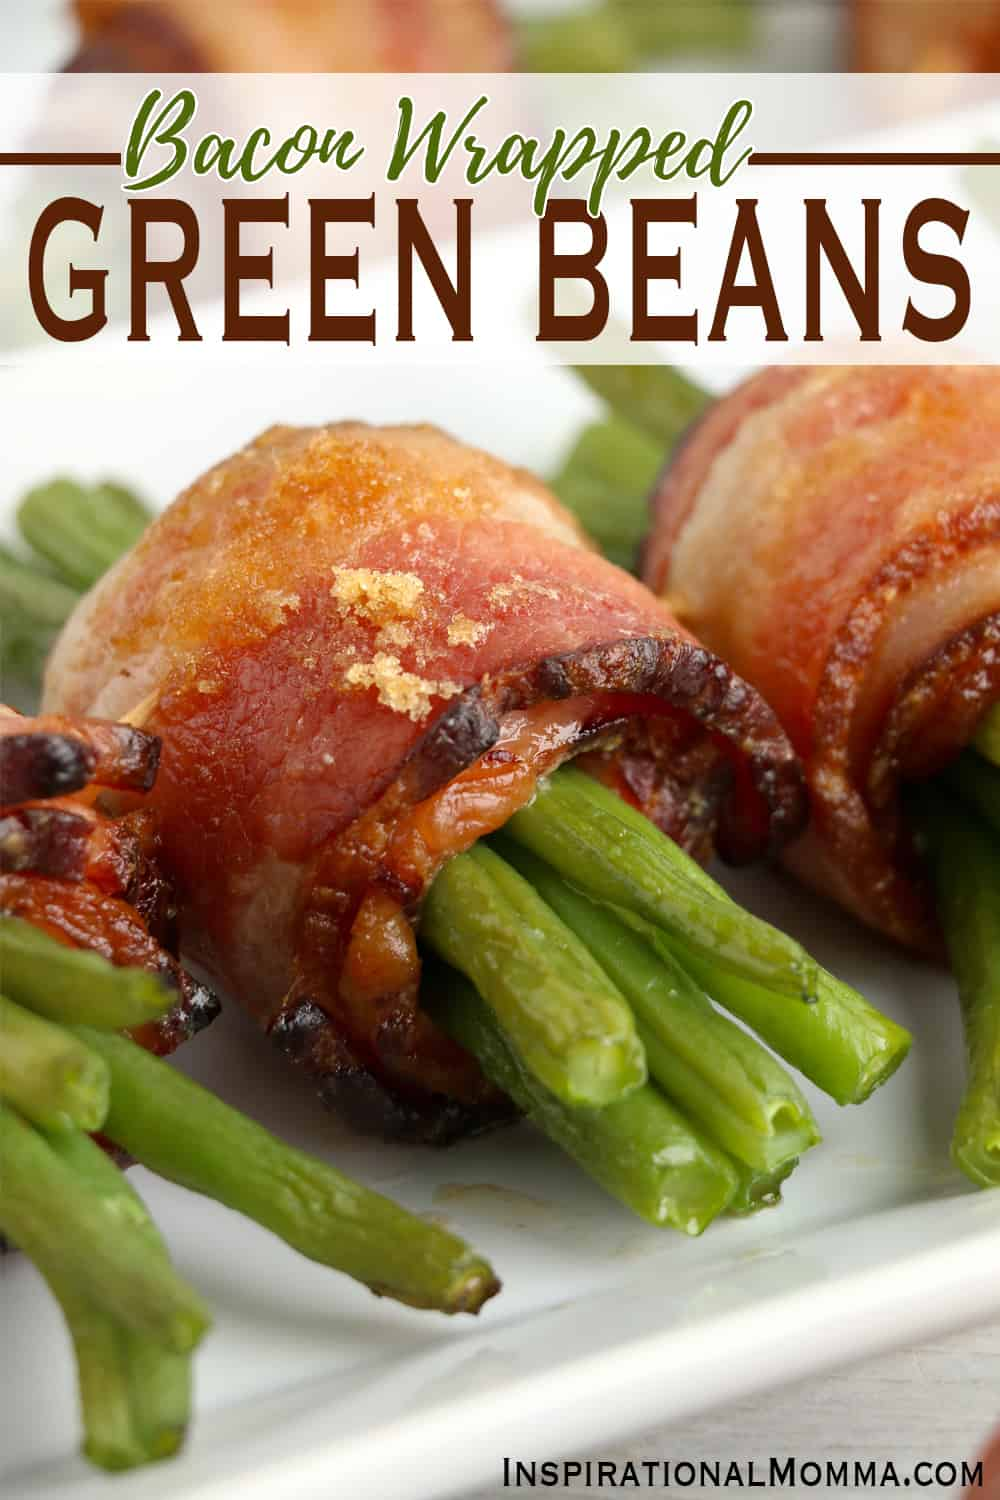 Bacon Wrapped Green Beans - Fresh, crisp beans wrapped in flavorful bacon, topped with brown sugar, and baked to delicious perfection! #InspirationalMomma #baconwrappedgreenbeans #greenbeans #baconandgreenbeans #ketoappetizers #keto #sidedishes #greenbeanbundles #greenbeanbaconbundles